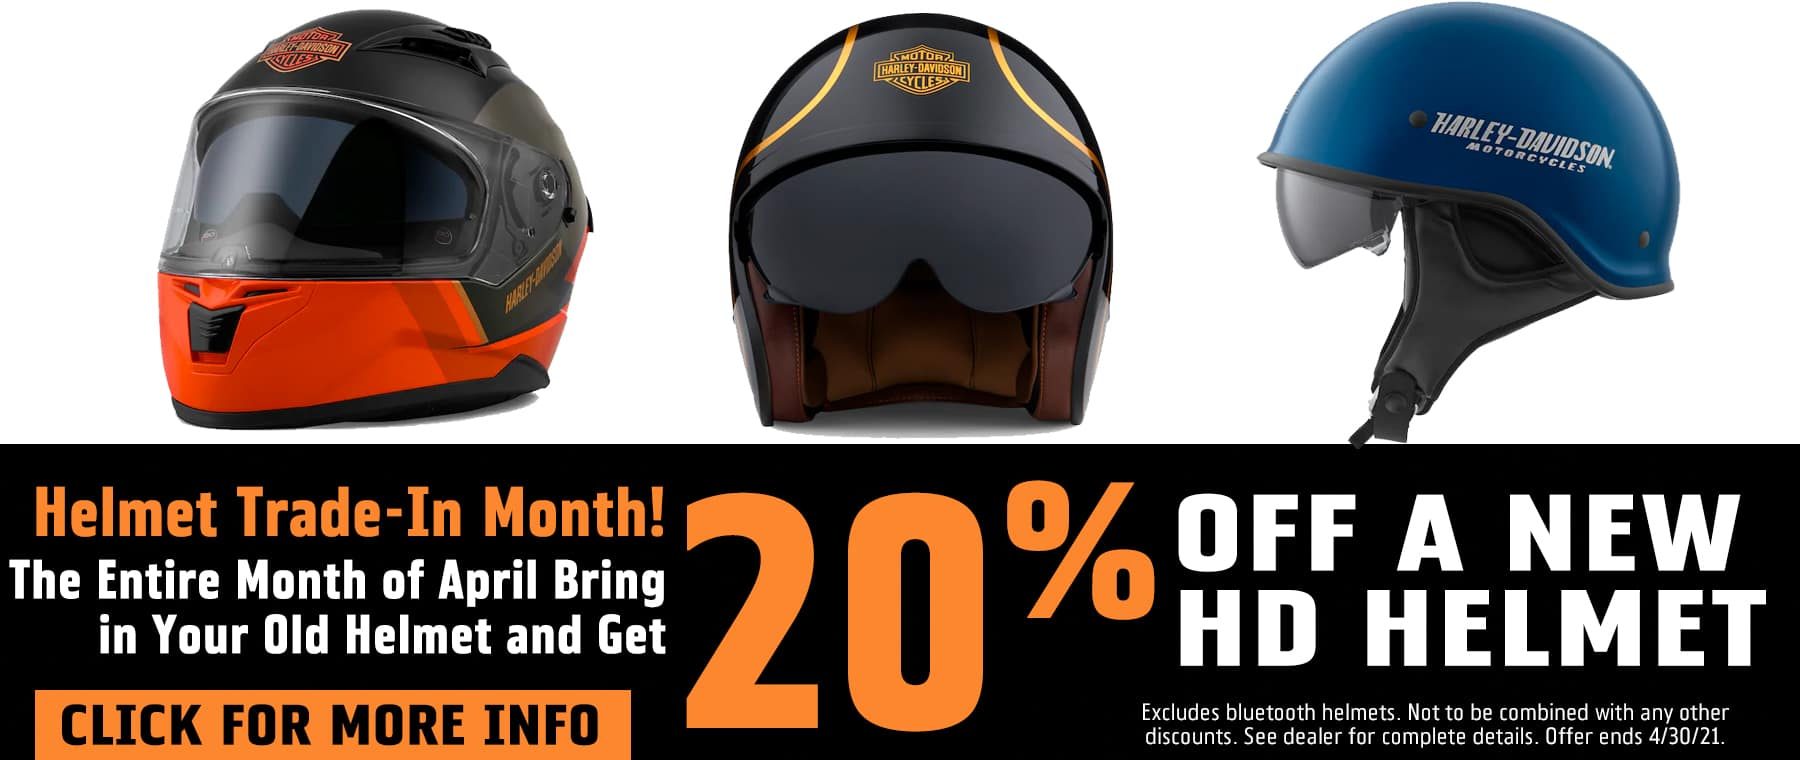 FBHD084967-01-MAR21_april_sales_slider_helmets